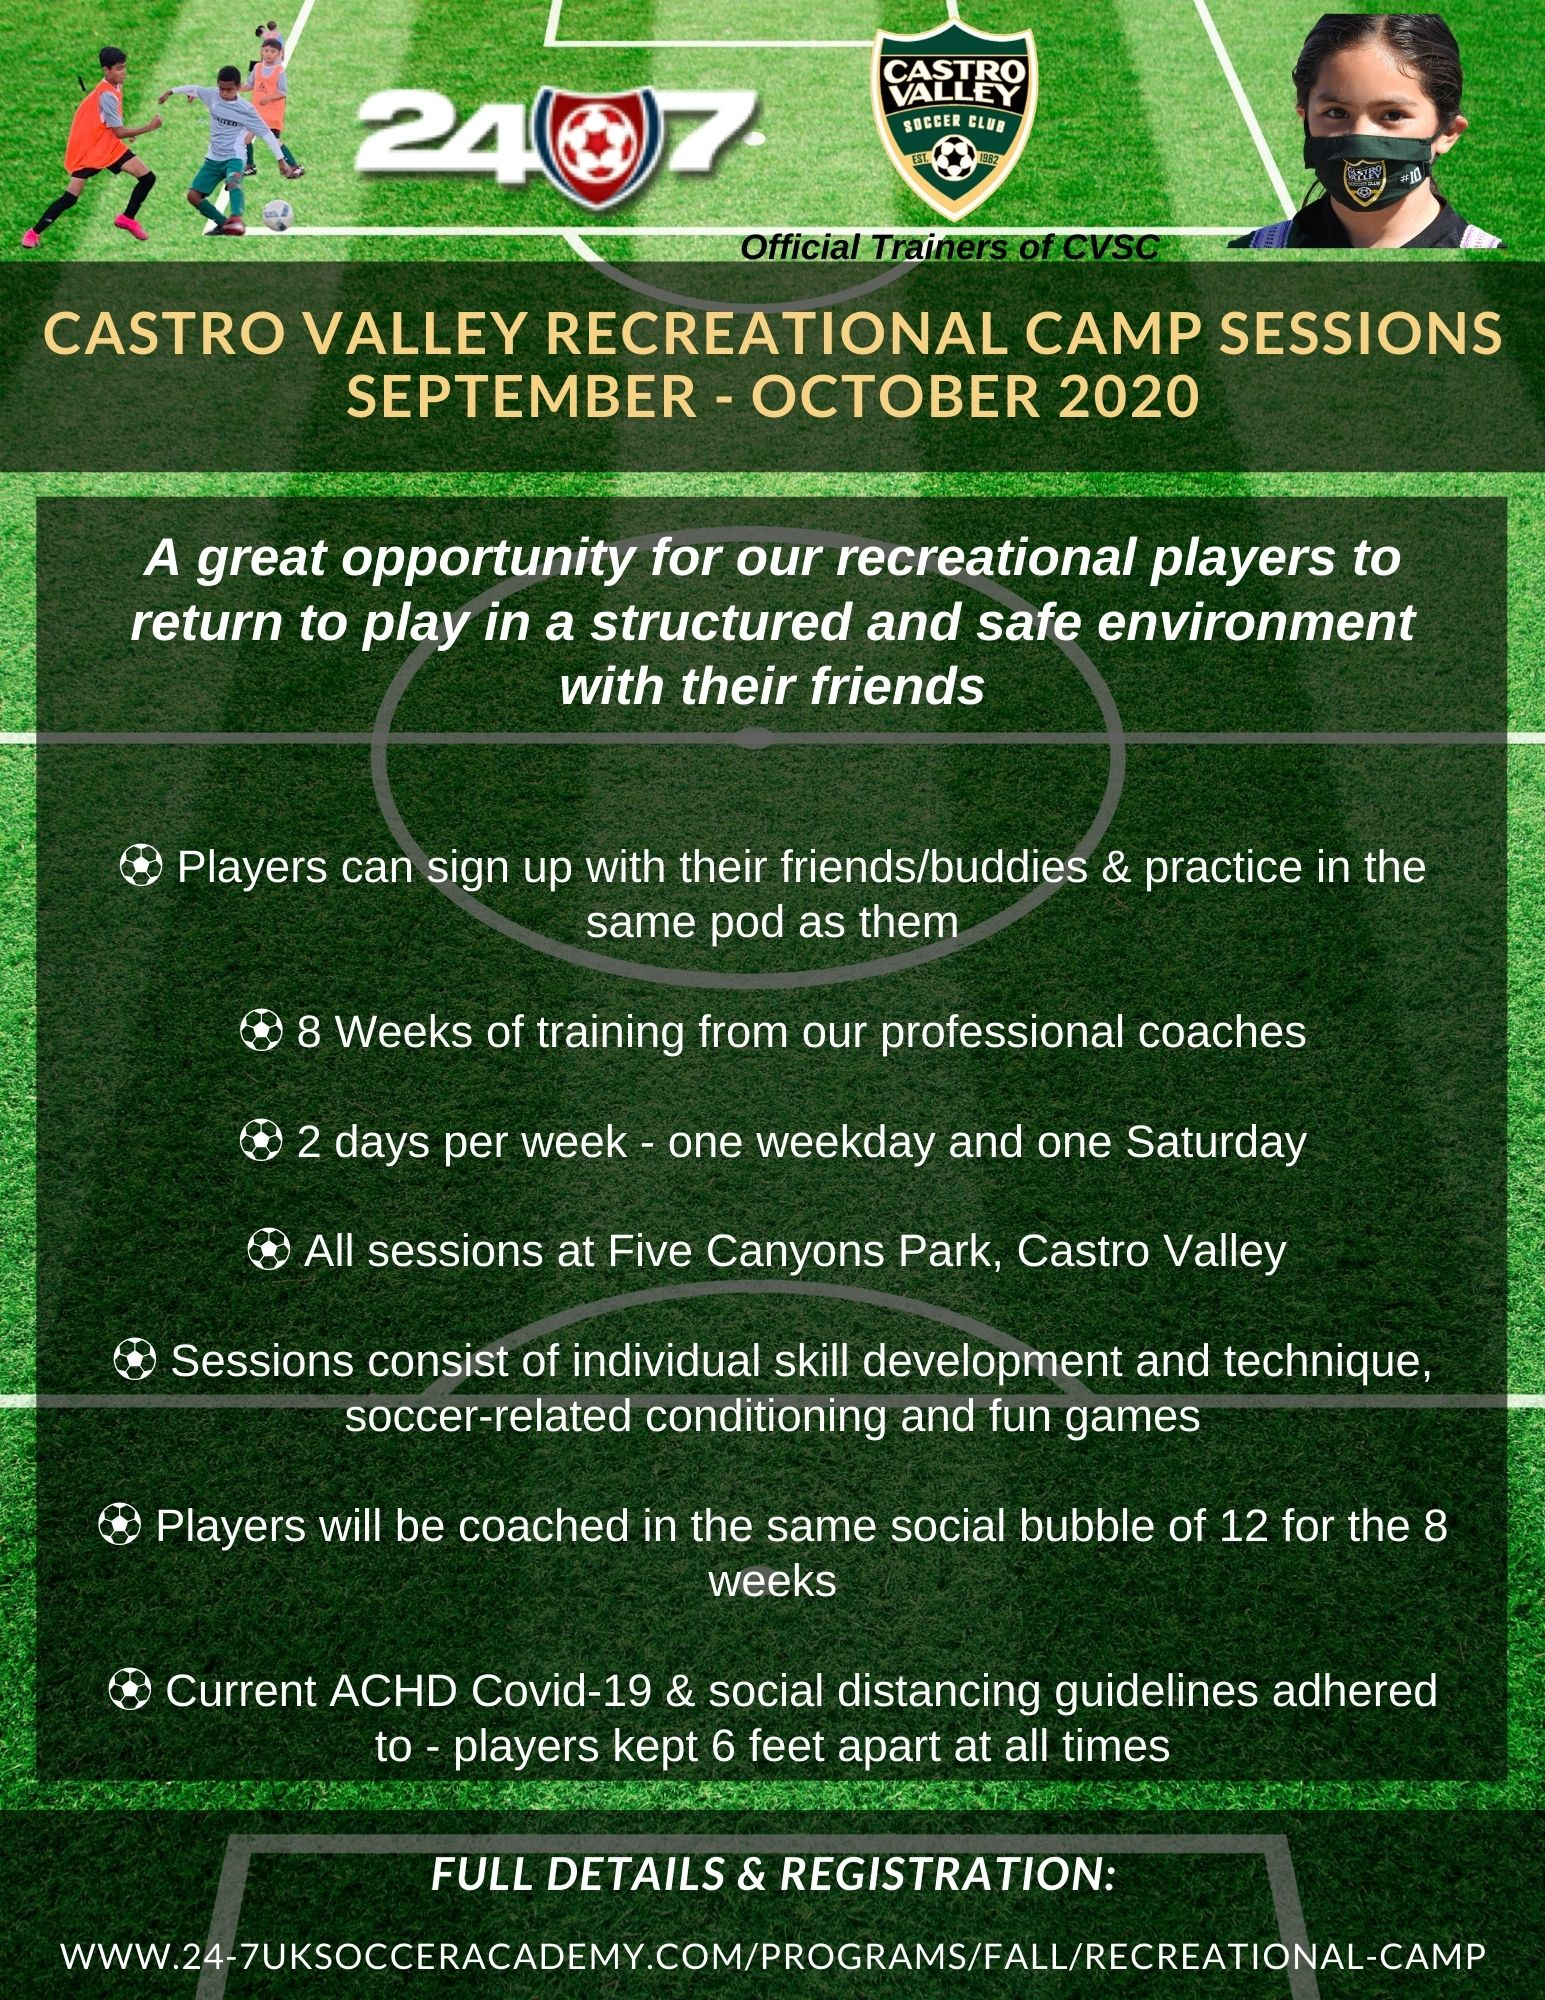 Castro Valley Recreational Camp Sessions